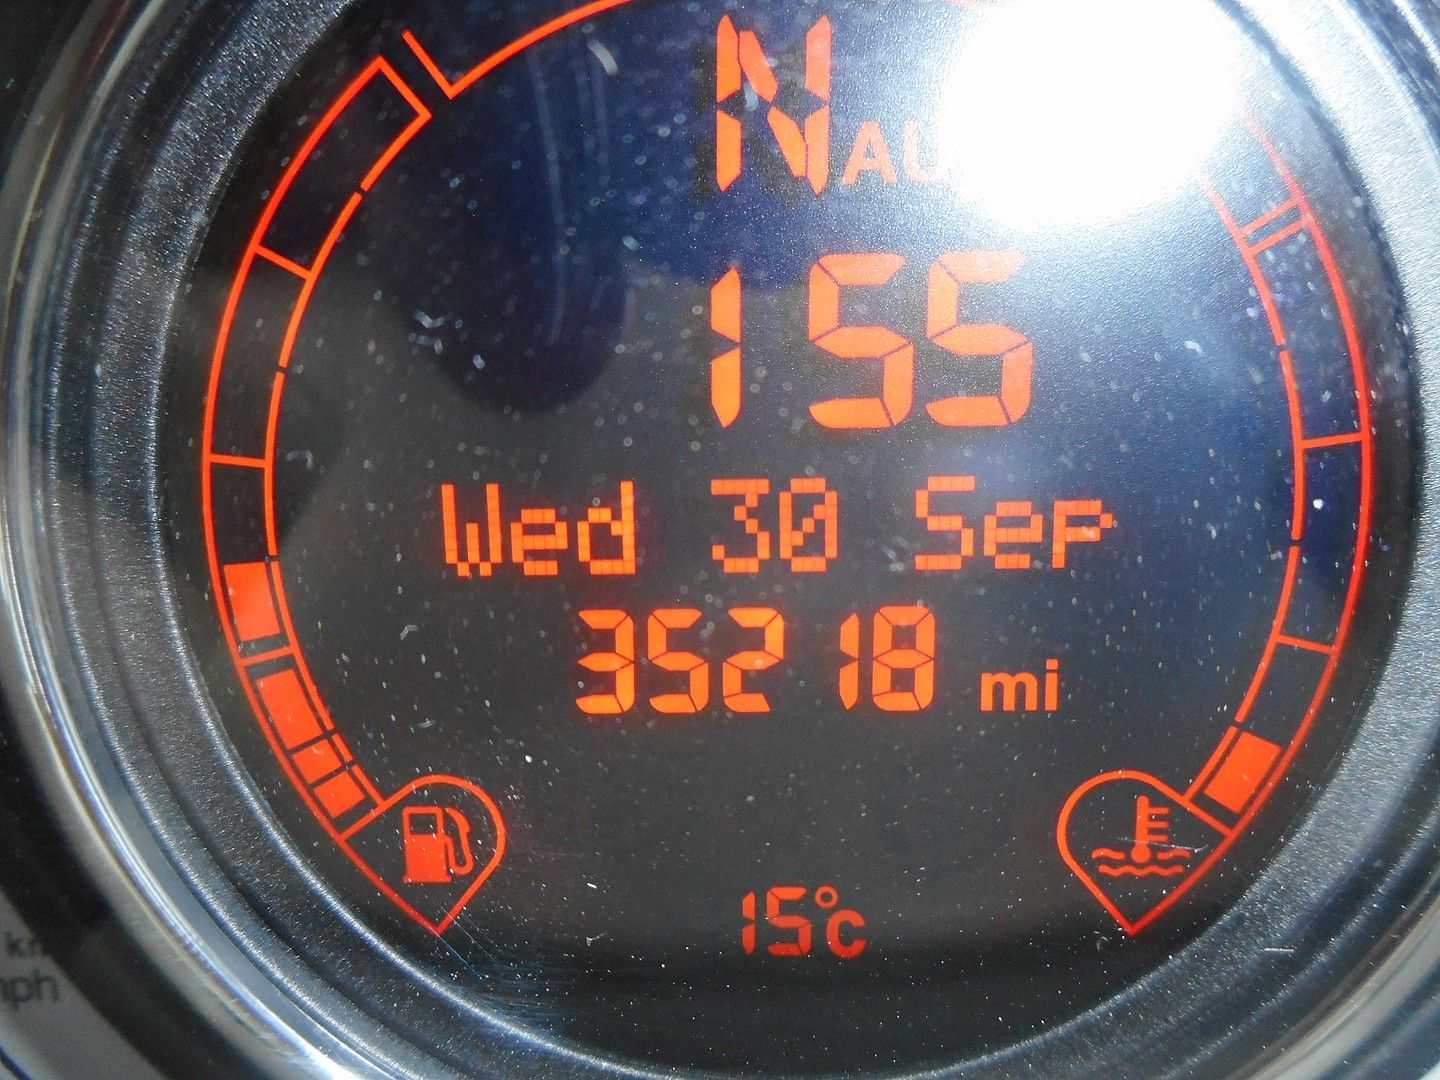 FIAT 500 1.2i Lounge S/S automatic (2013) - Picture 9